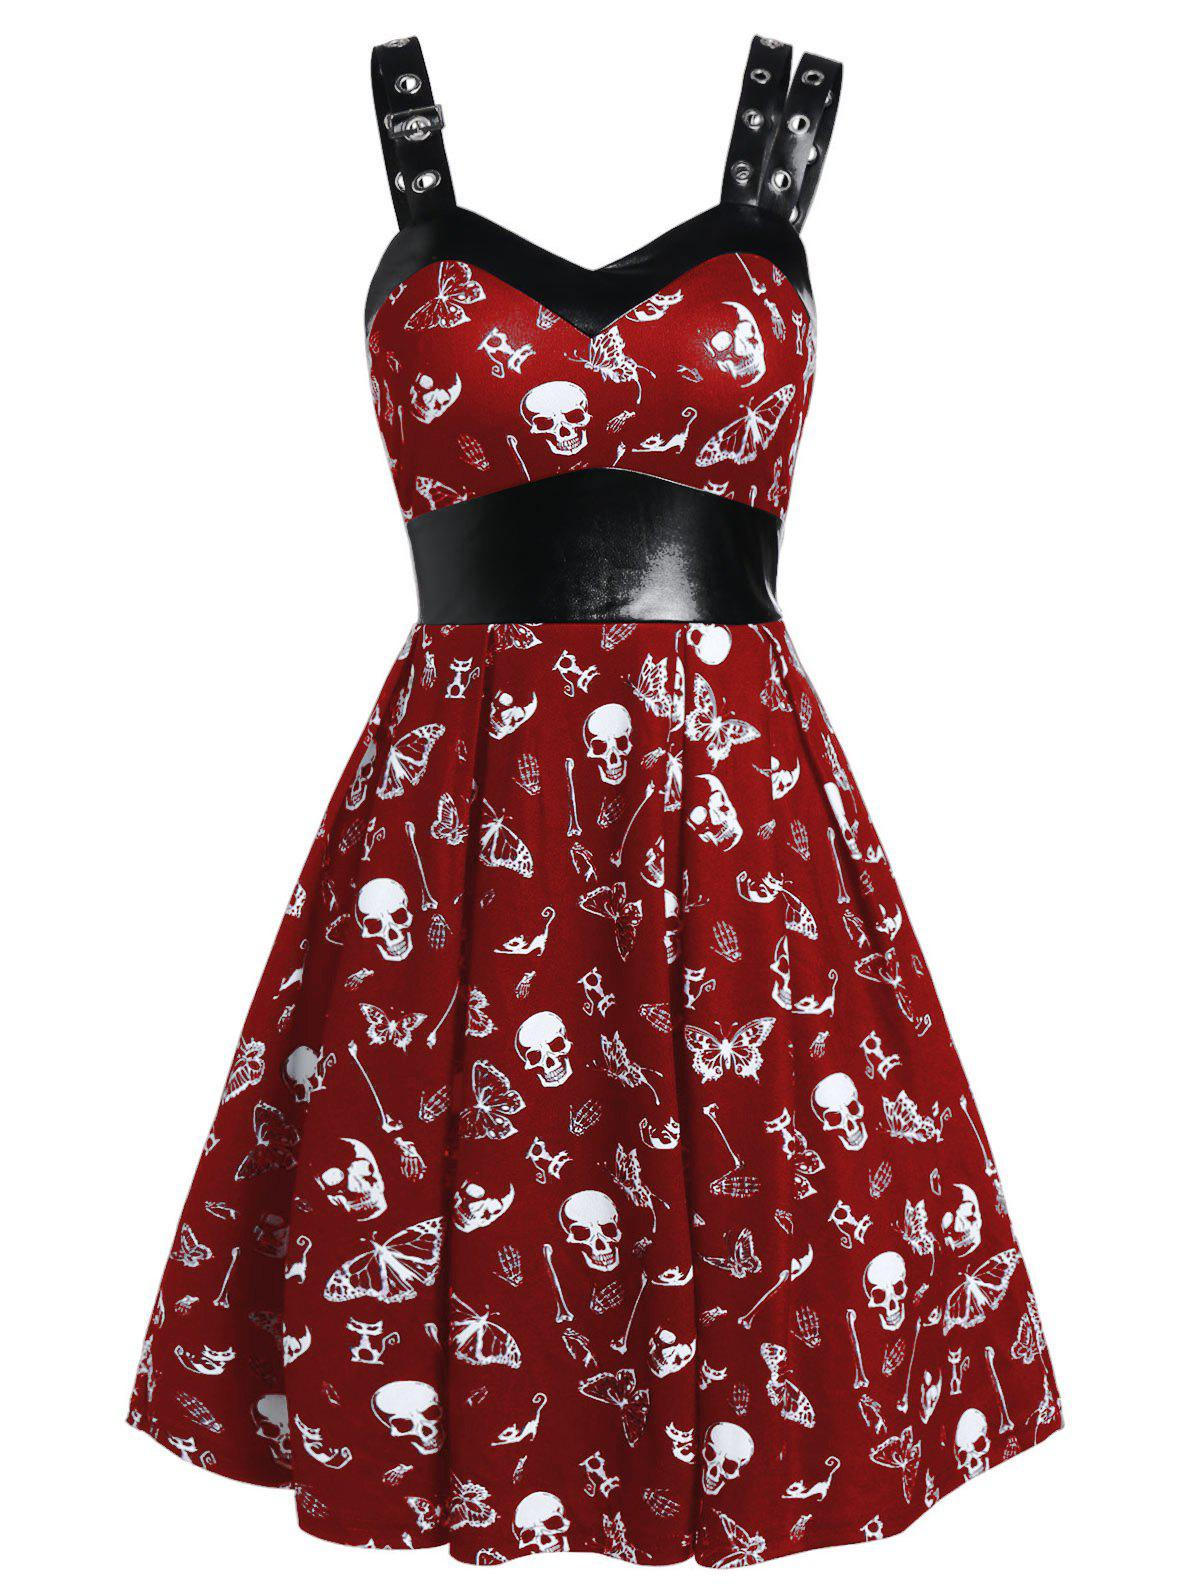 Discount Skull Print High Waist Fit And Flare Dress